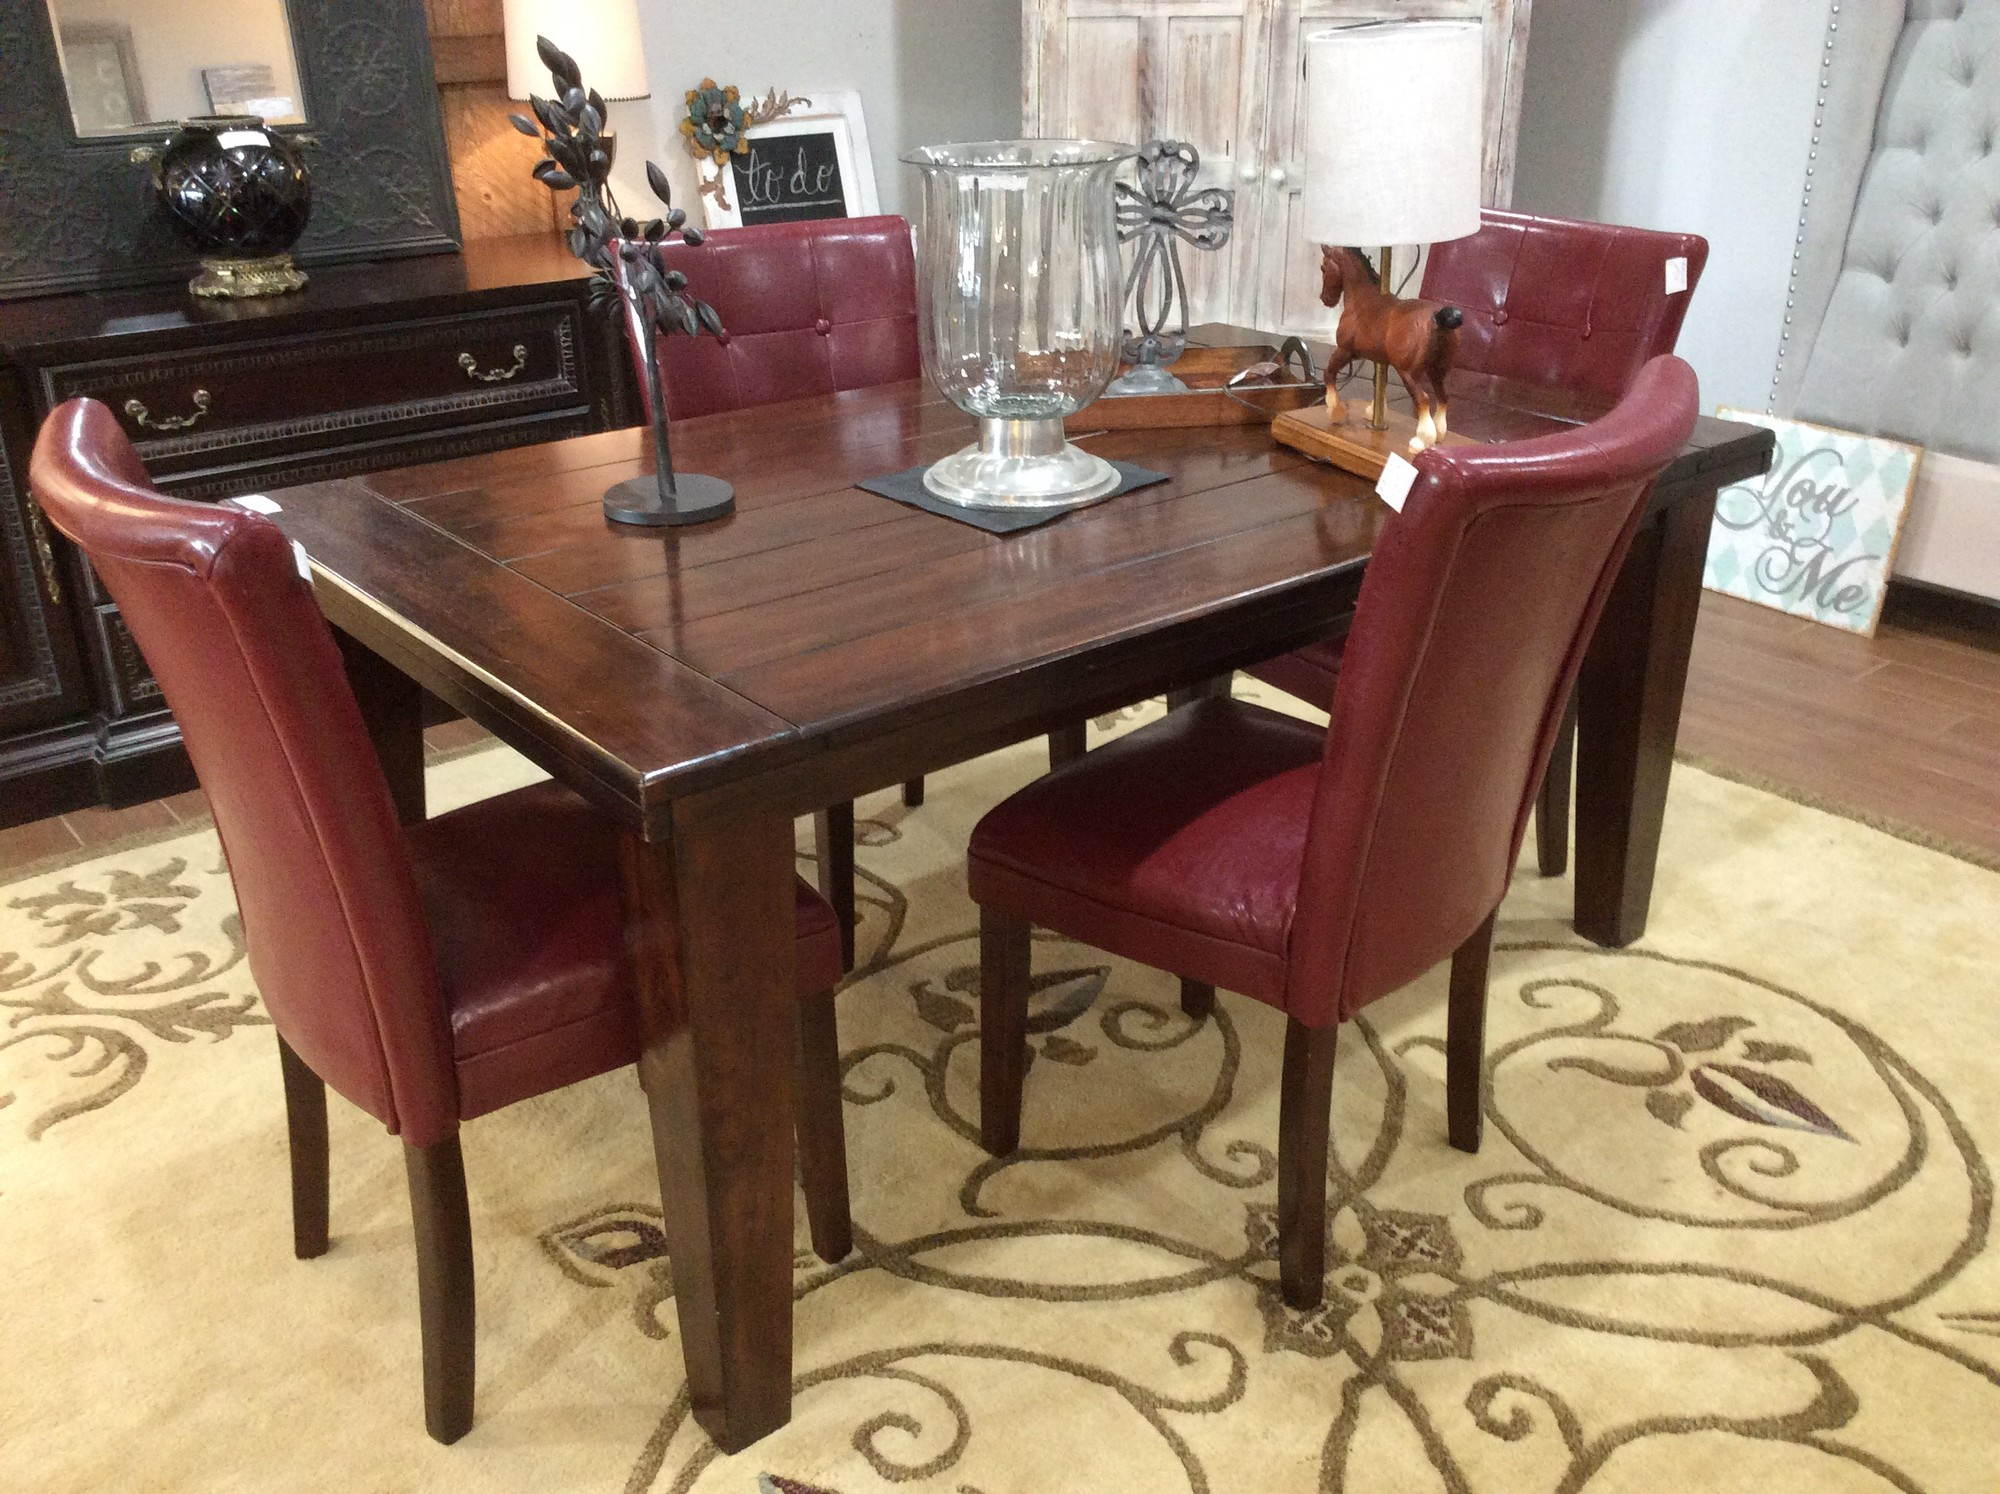 BARGAIN ALERT!!!!! This handsome dining set could be yours today for ONLY $345!!! The table appears to be solid wood and has a few surface issues, but no major damage. The 4 chairs are from Kirklands, and features maroon pleather upholstery and button tufted backs. Hurry though, this won't last here for long!